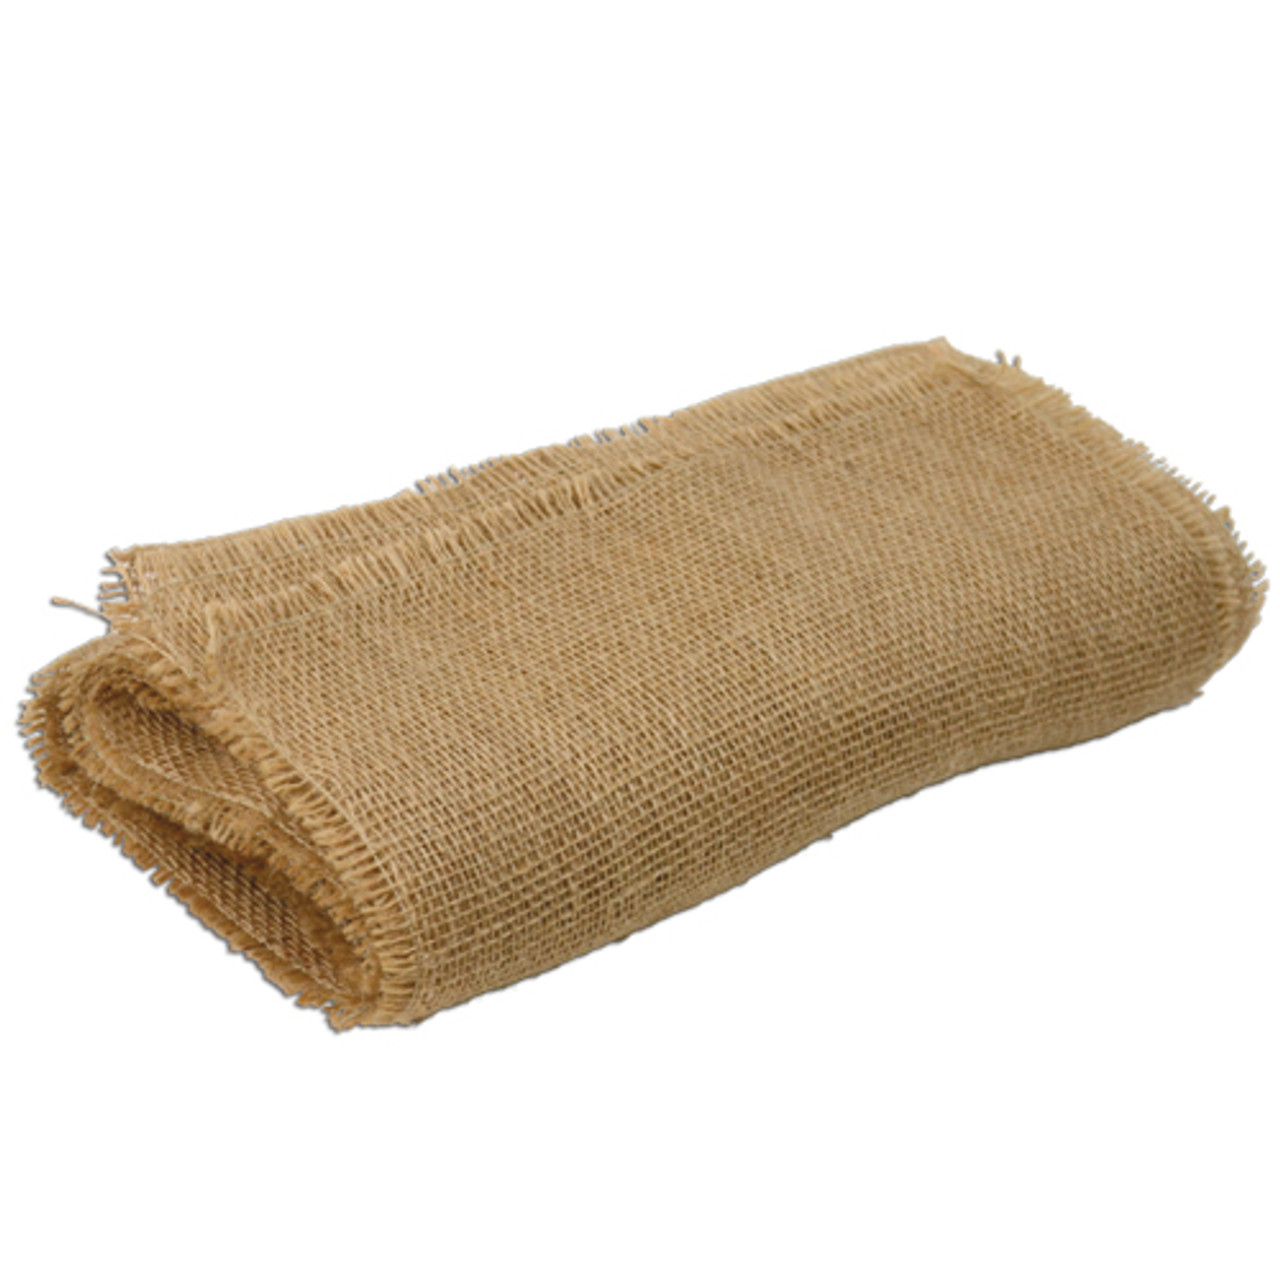 "12 1/2""x120""Jute Table Runner with Fringed Edge"